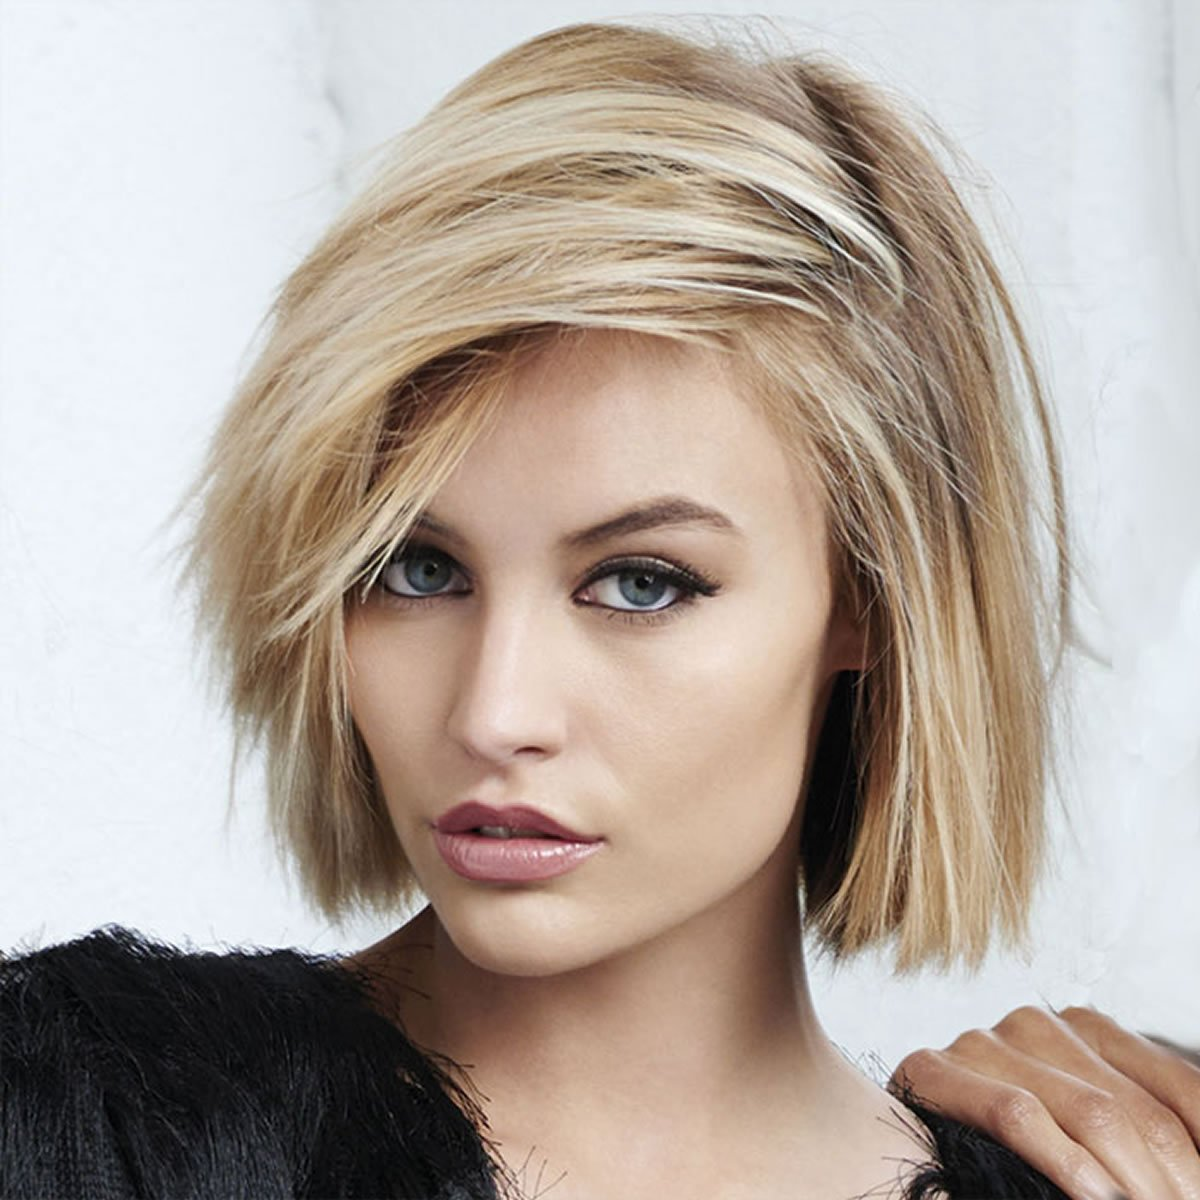 Haircut Styles On Twitter Best Short Bob Hairstyles For 2018